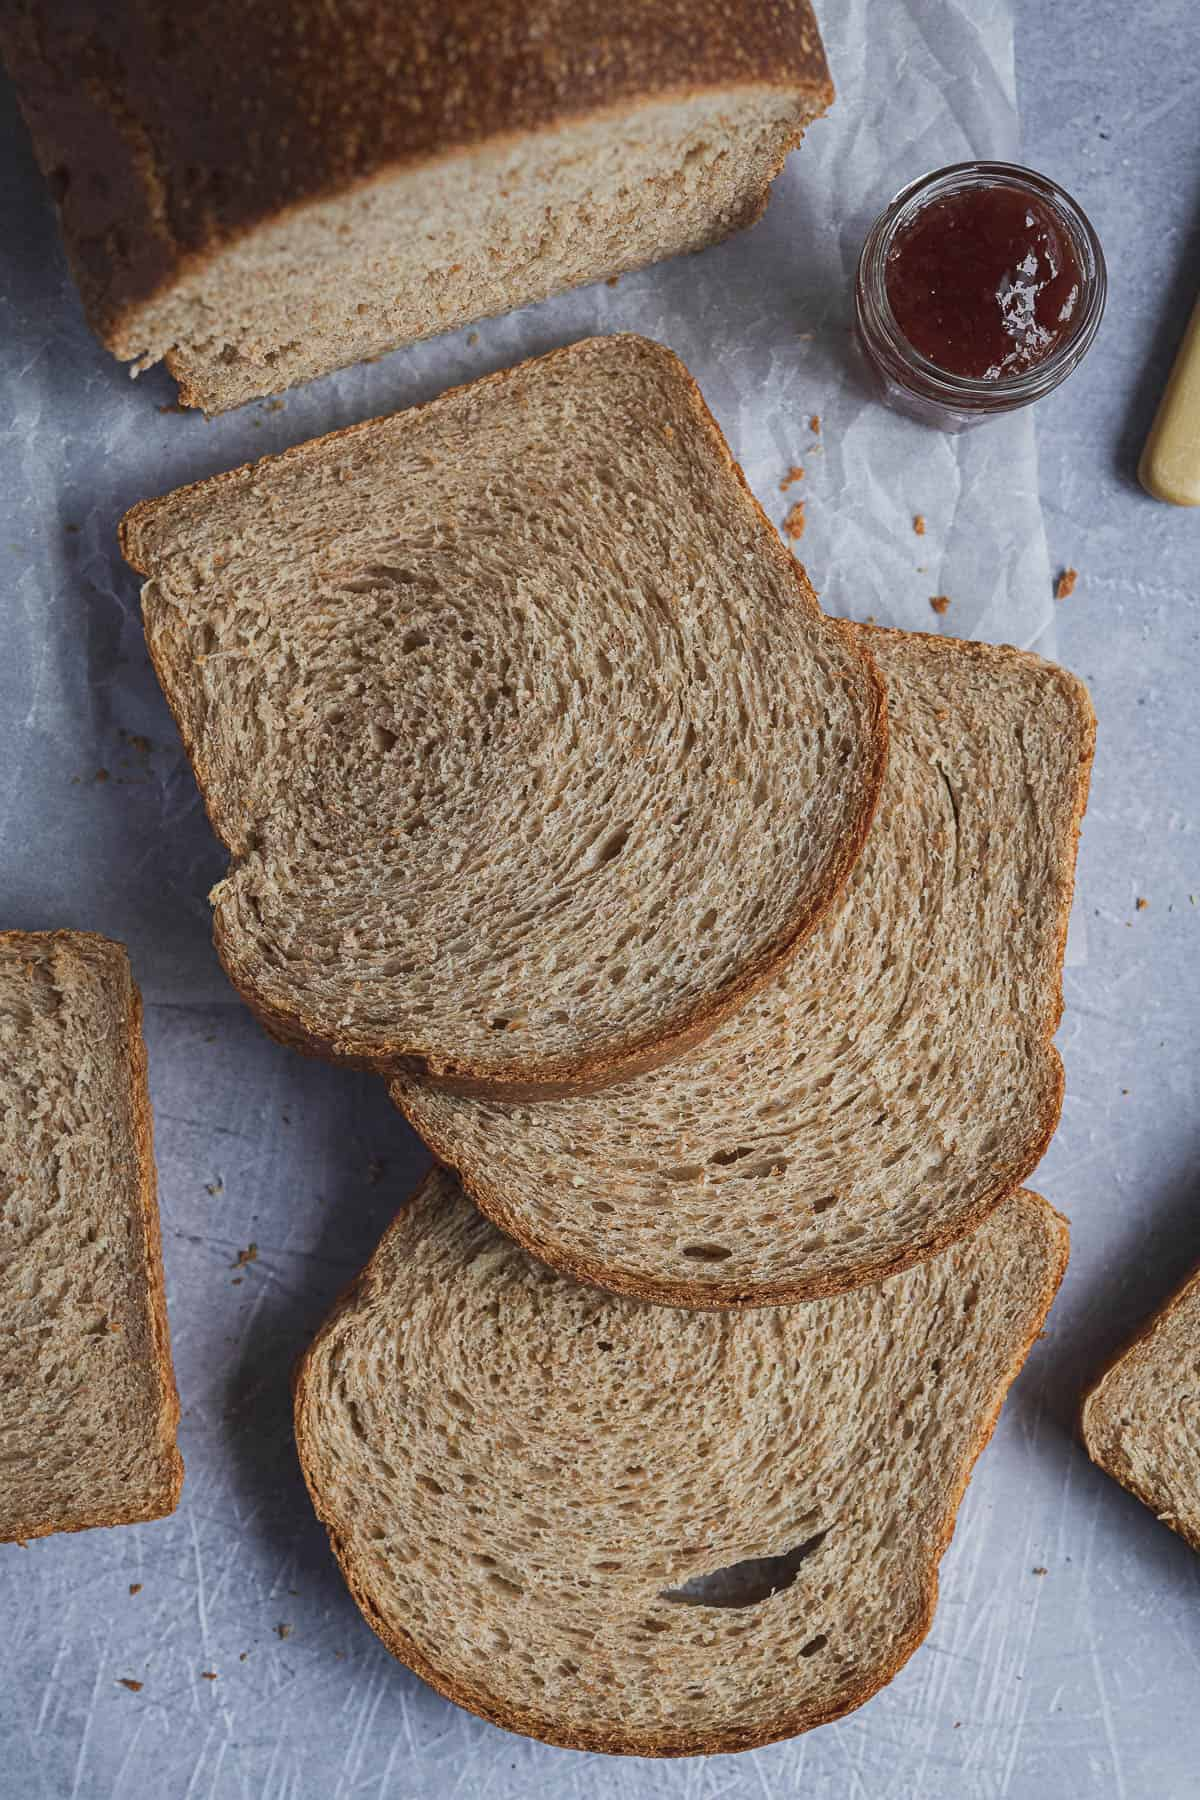 Slices of vegan wholemeal sandwich bread with a jar of jam.